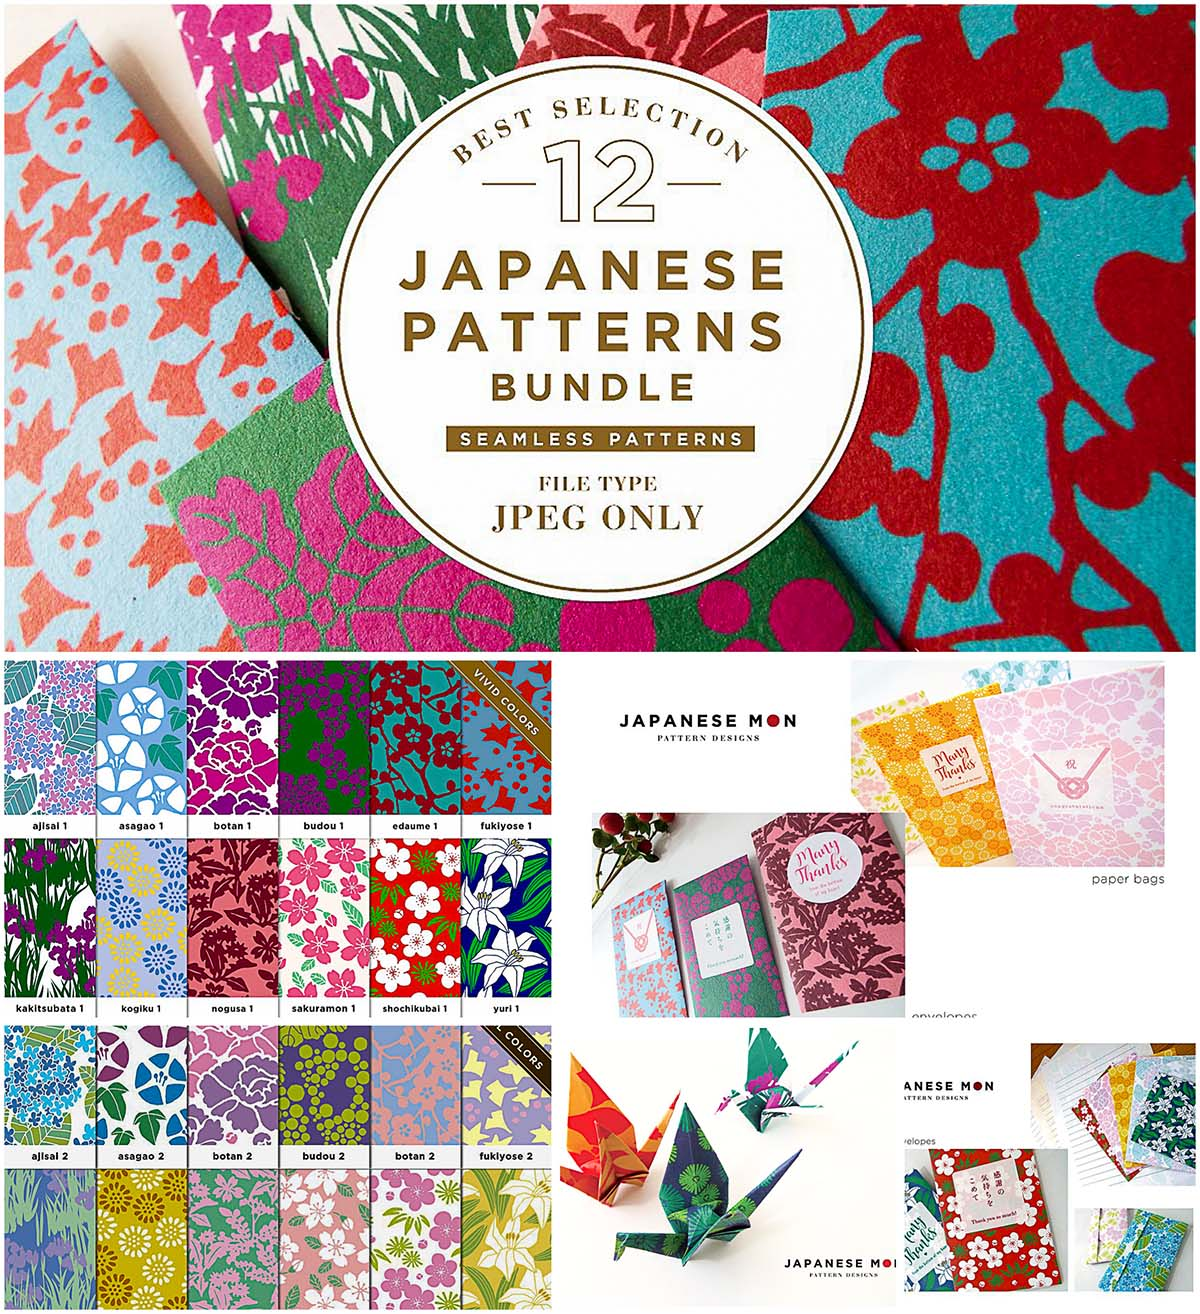 Japanese patterns bundle